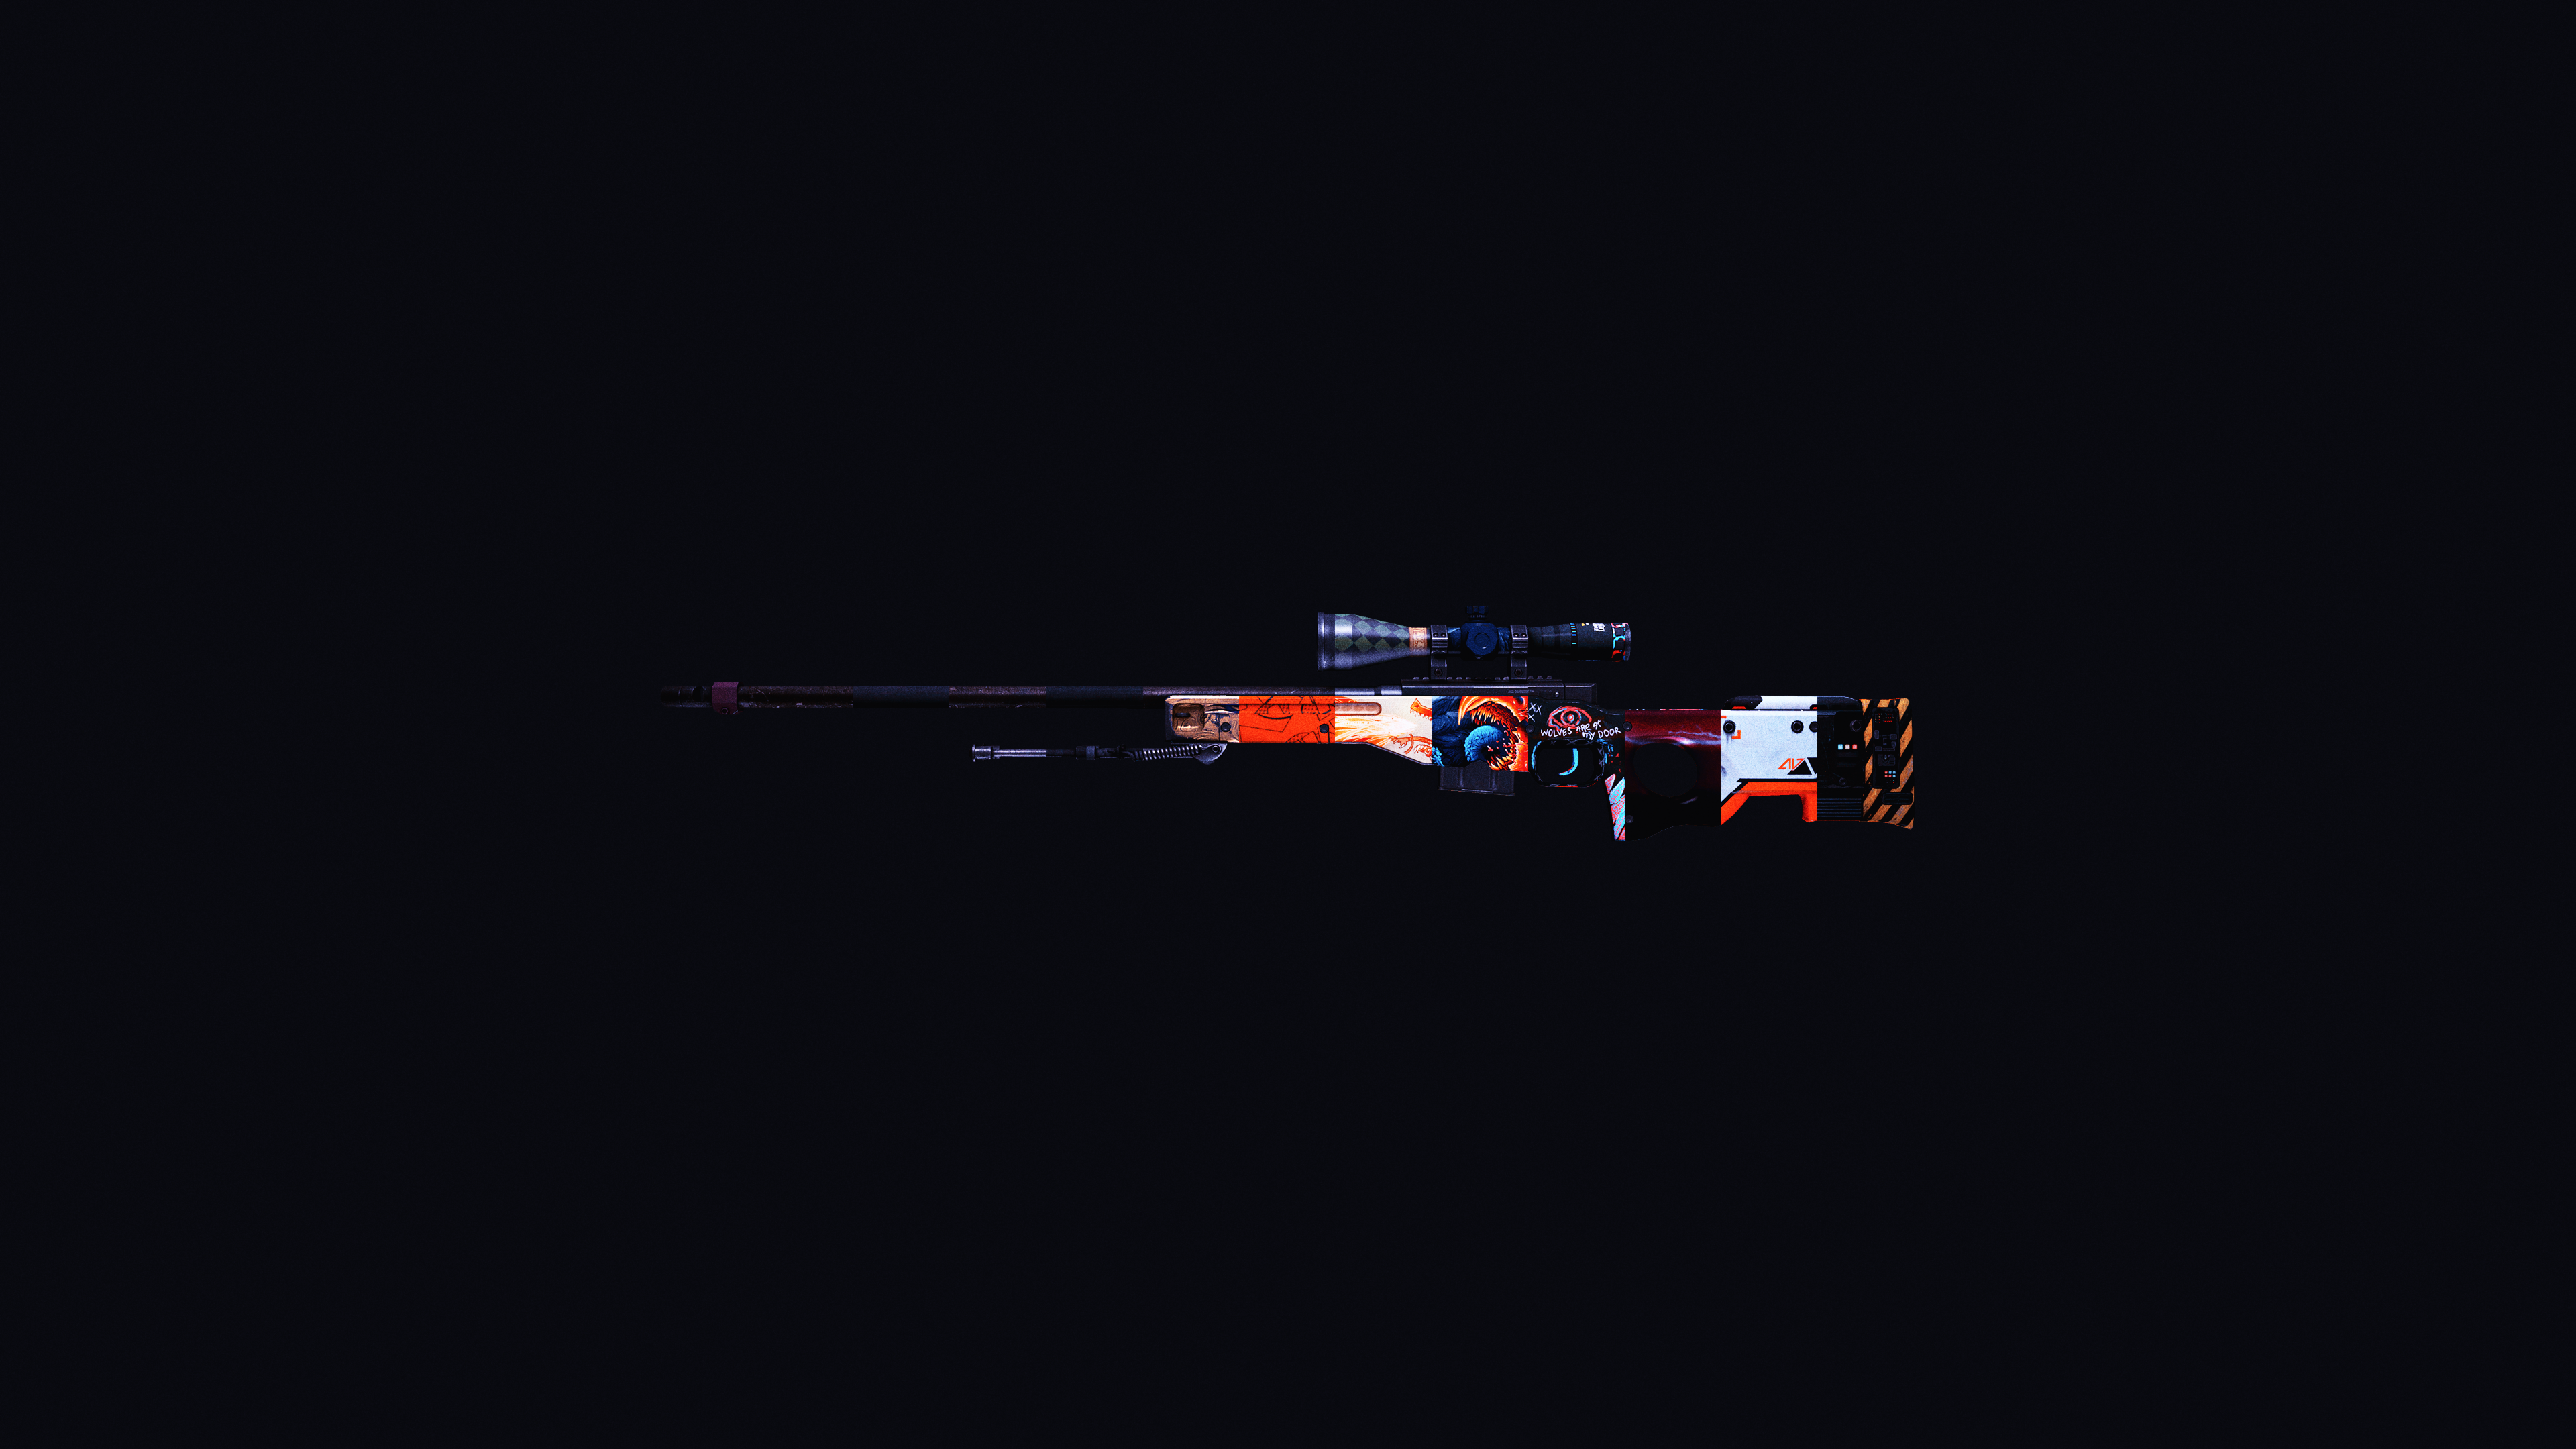 4k Wallpaper Awp Skins United Games Globaloffensive